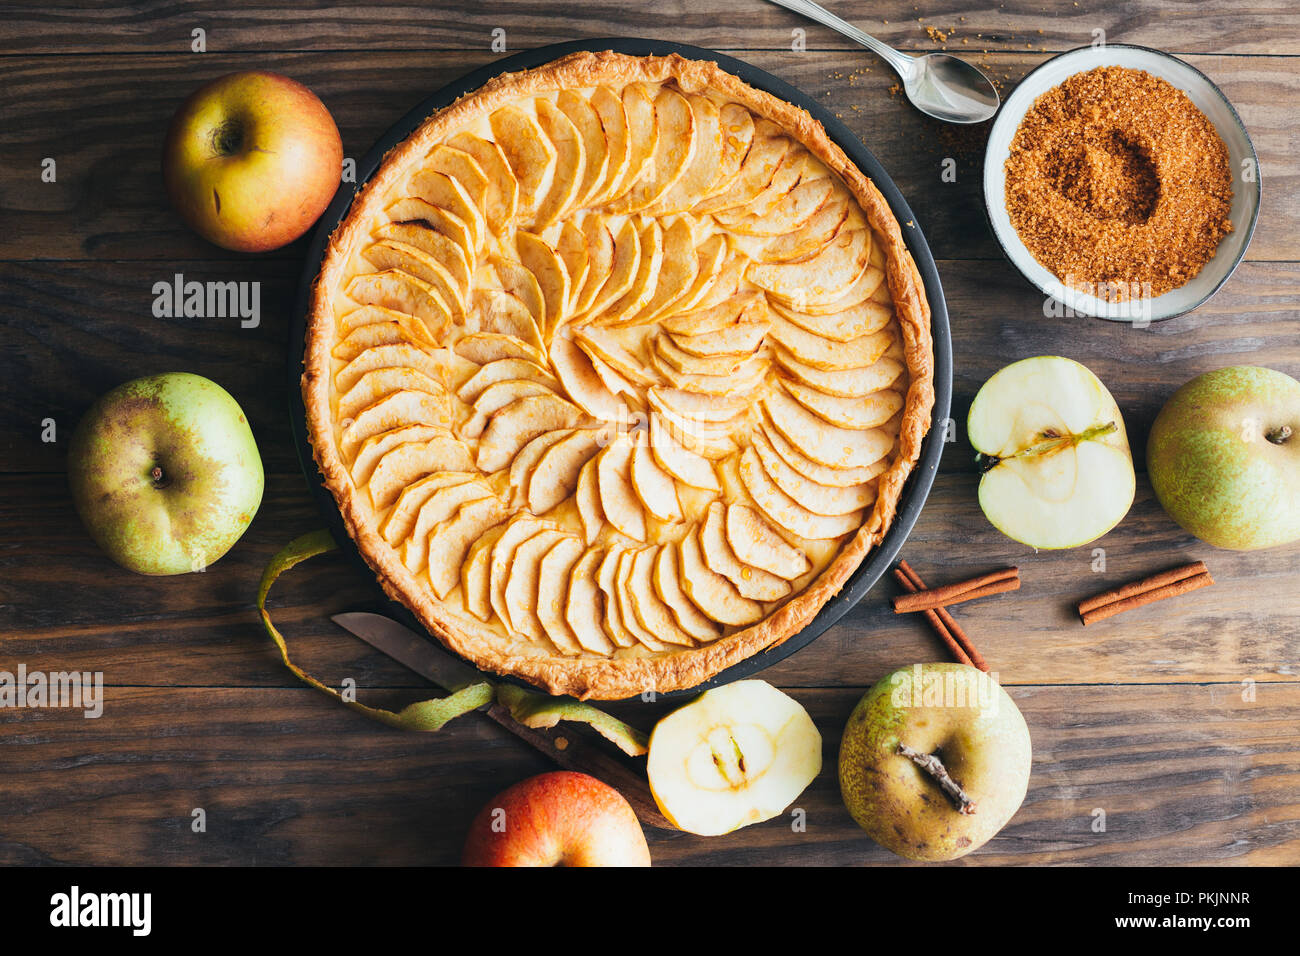 Freshly baked apple pie tart with custard filling on a rustic wooden table. Top view - Stock Image